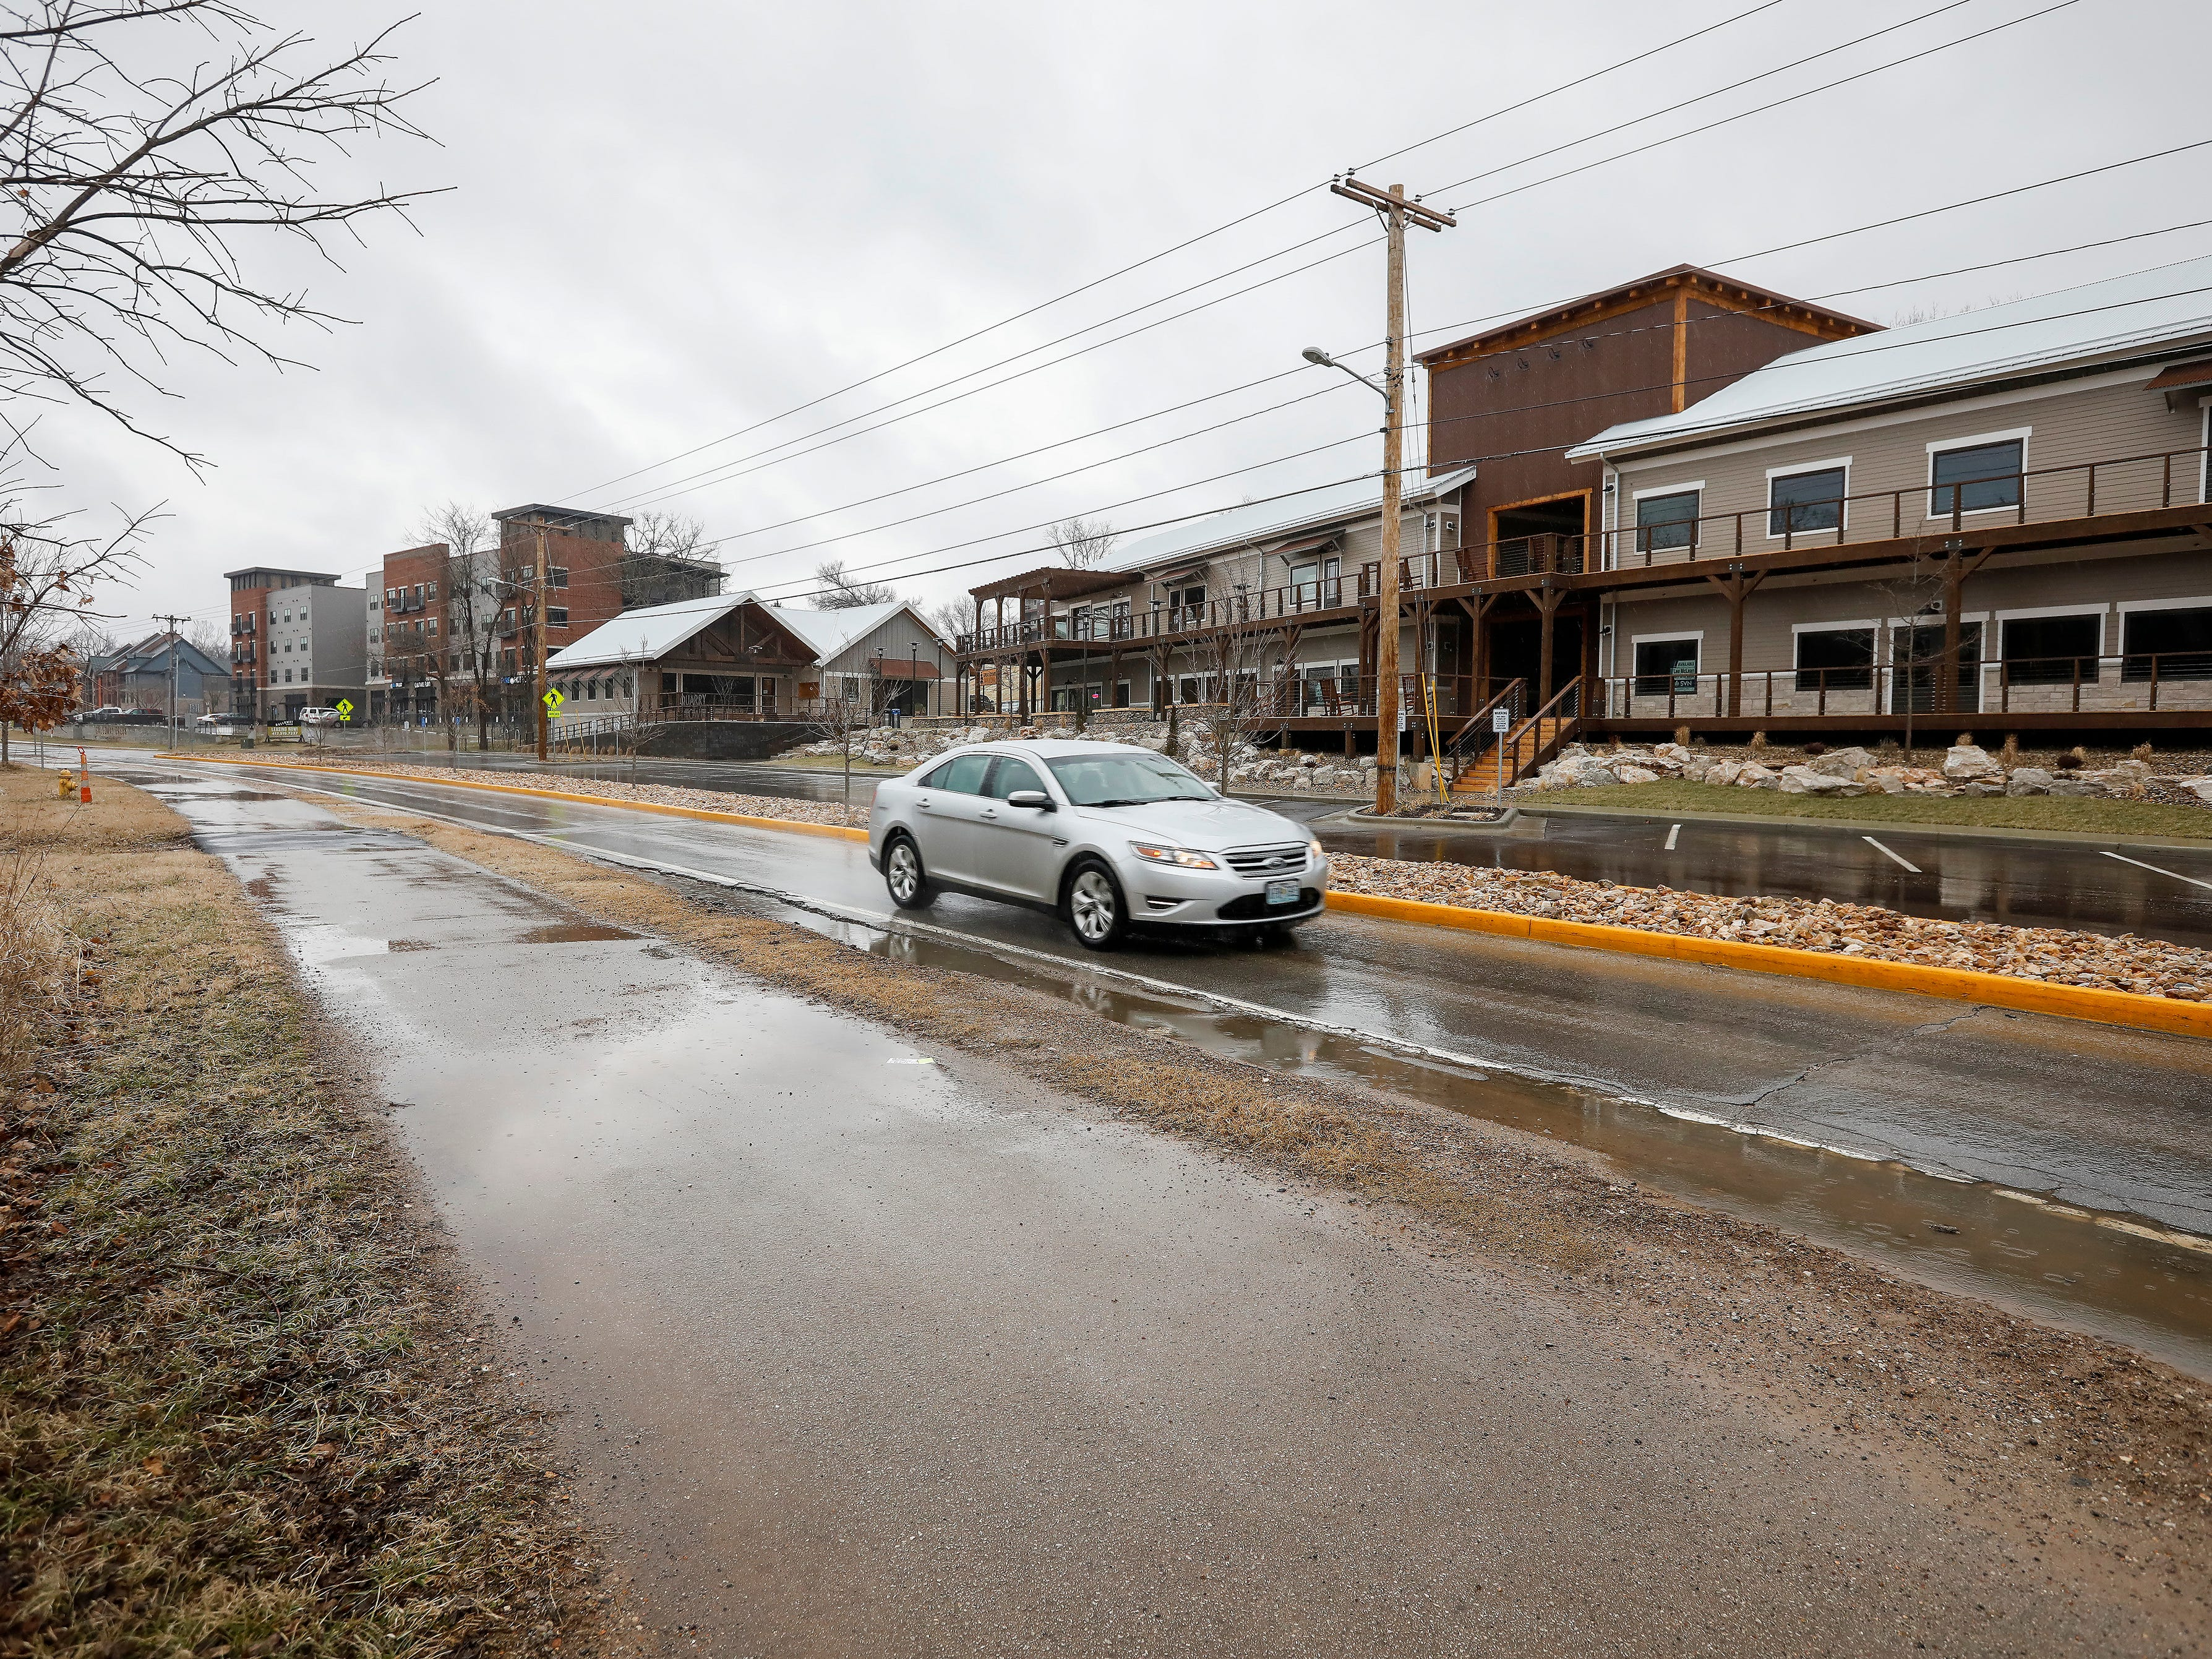 There weren't any walkers and joggers use the greenway trail in Galloway as sleet and freezing rain fell on Friday, Feb. 15, 2019. Temperatures were in the upper 20s on Friday.